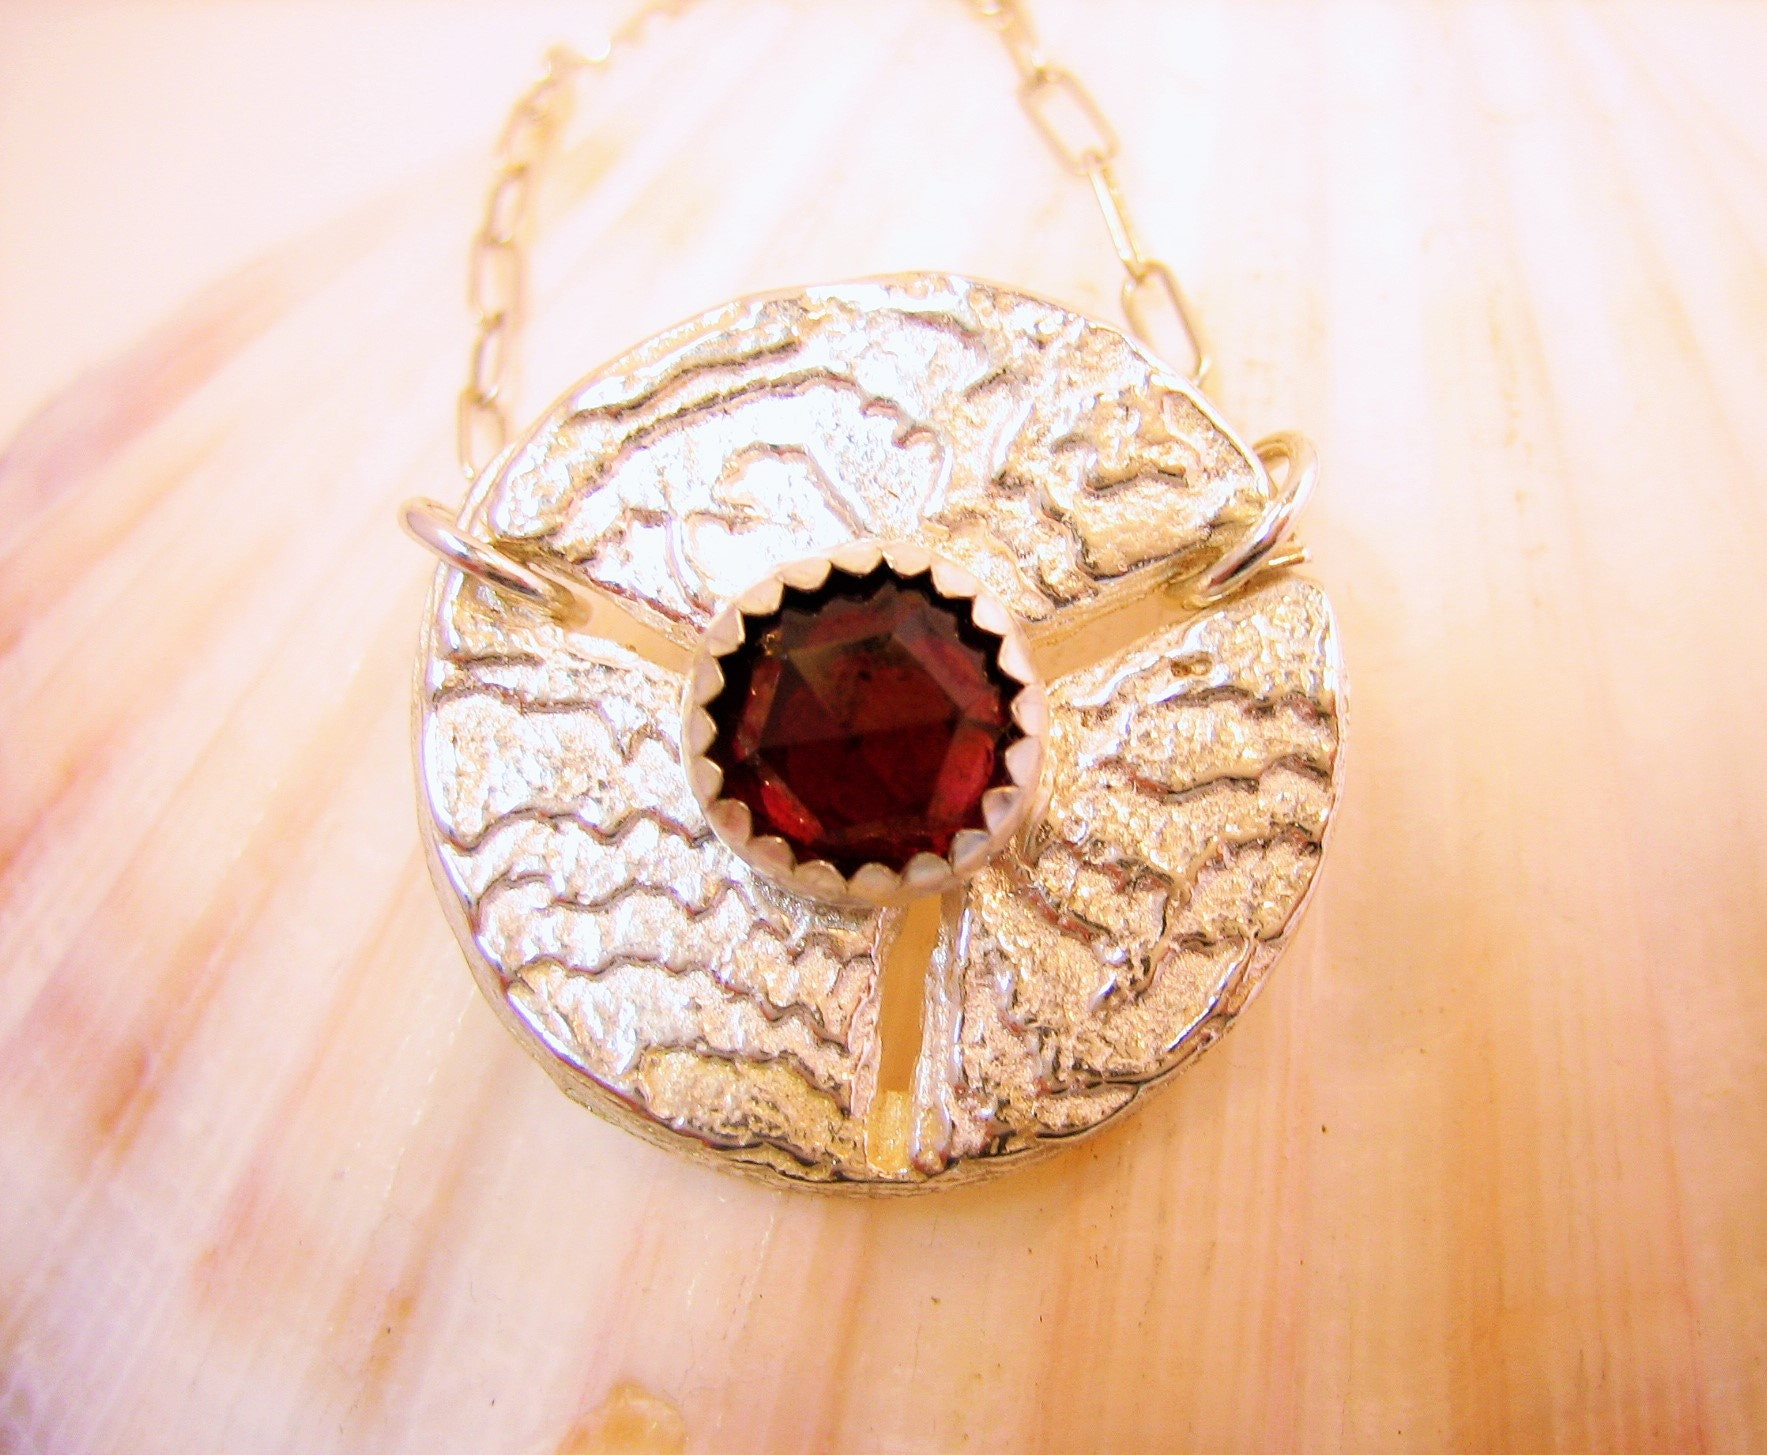 Red garnet on unique sea coin silver pendant, silver sea sponge inspired pendant, sea dollar silver necklace, silver and red gem necklace